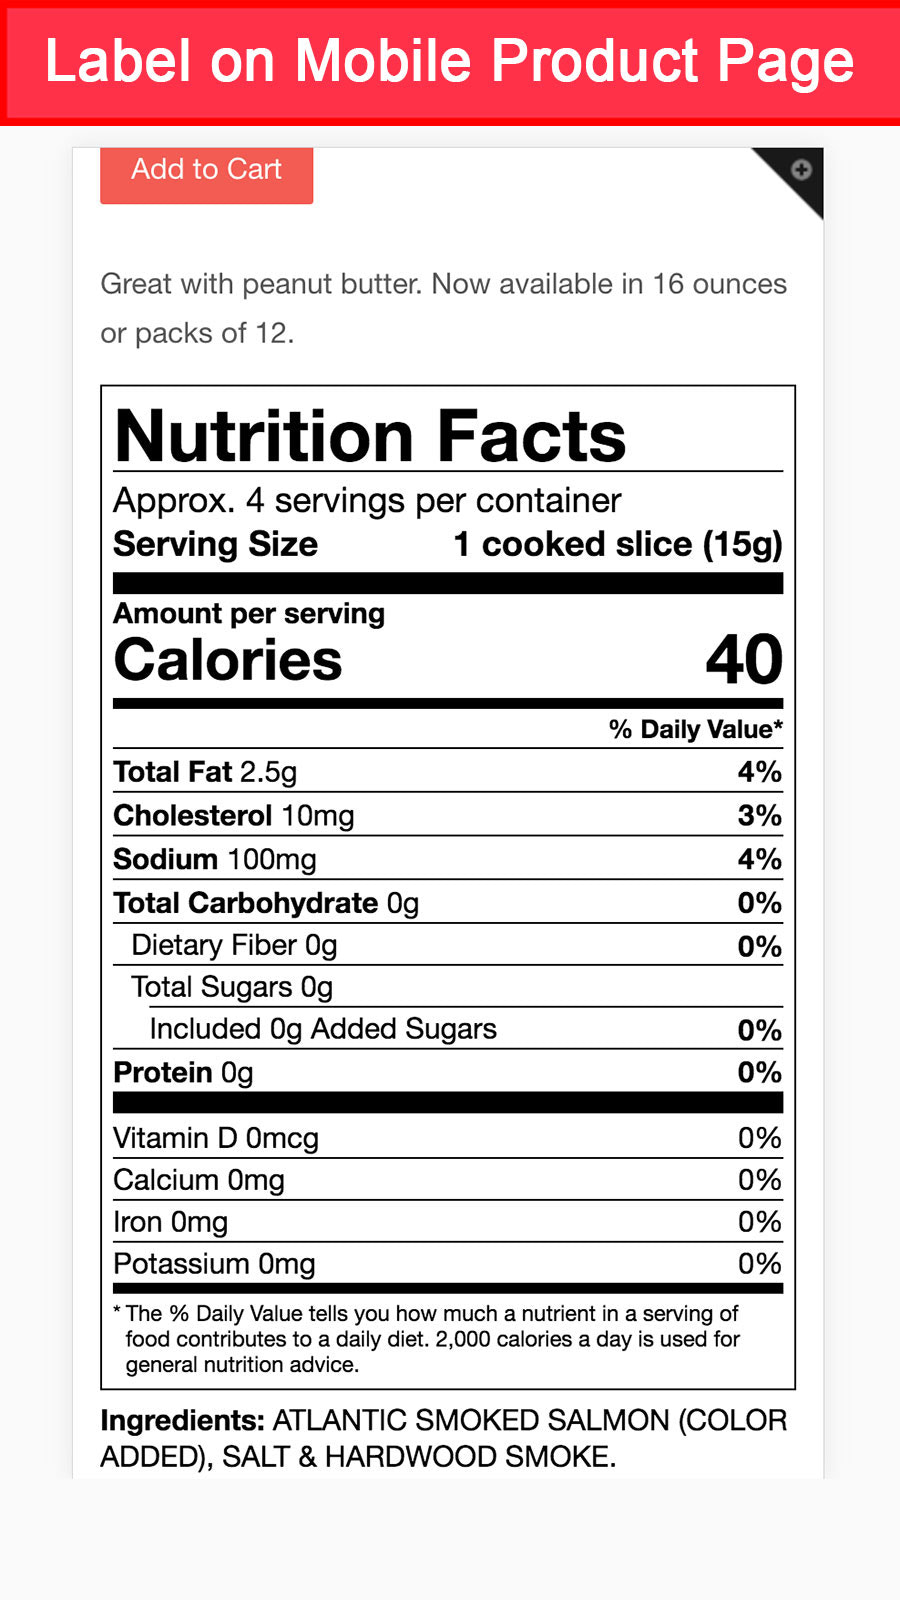 FDA 2018 vertical nutrition facts label mobile view